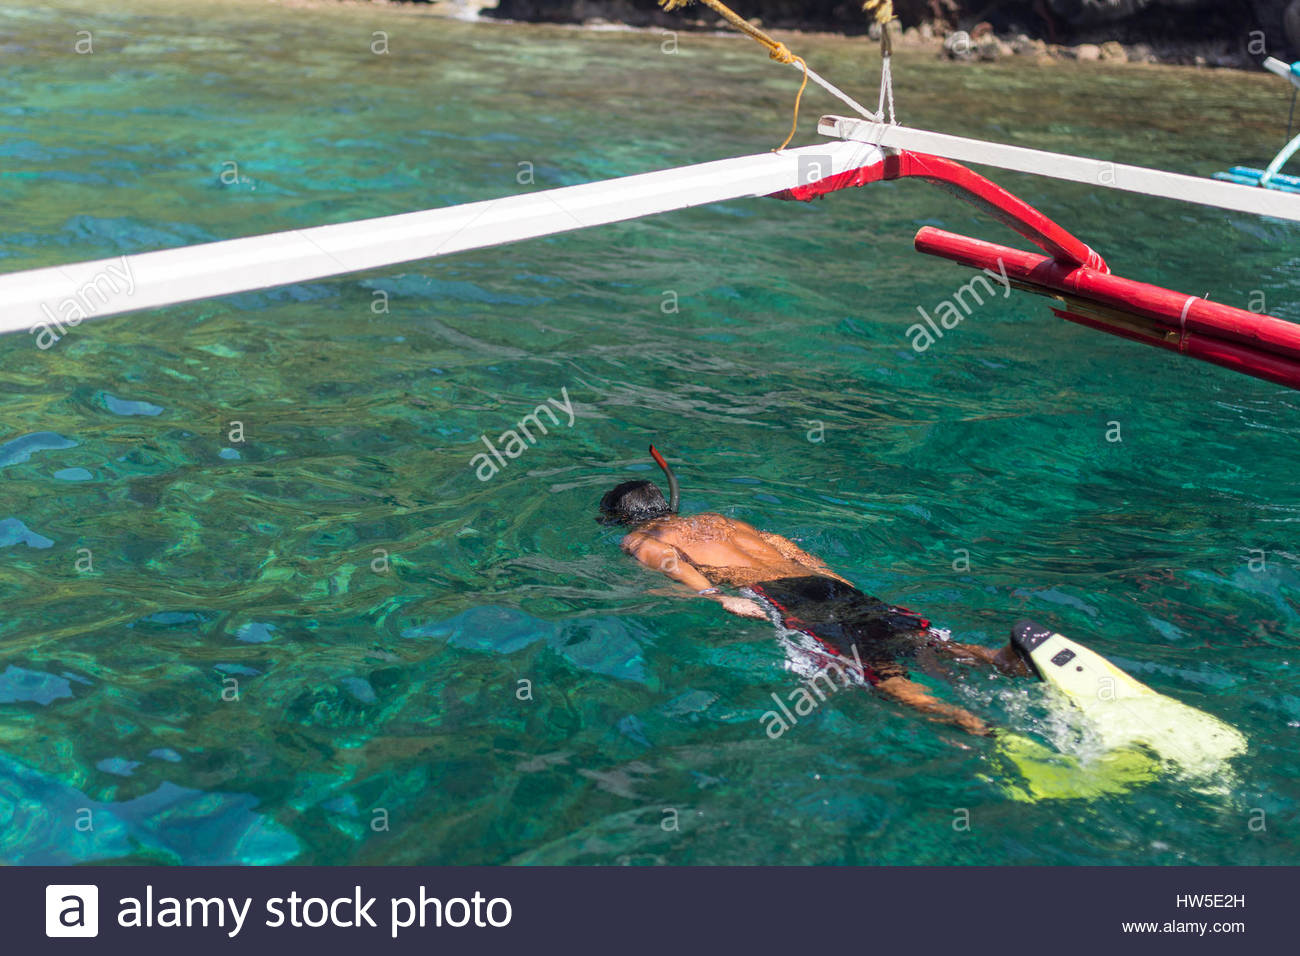 young-man-snorkelling-swimming-with-mask